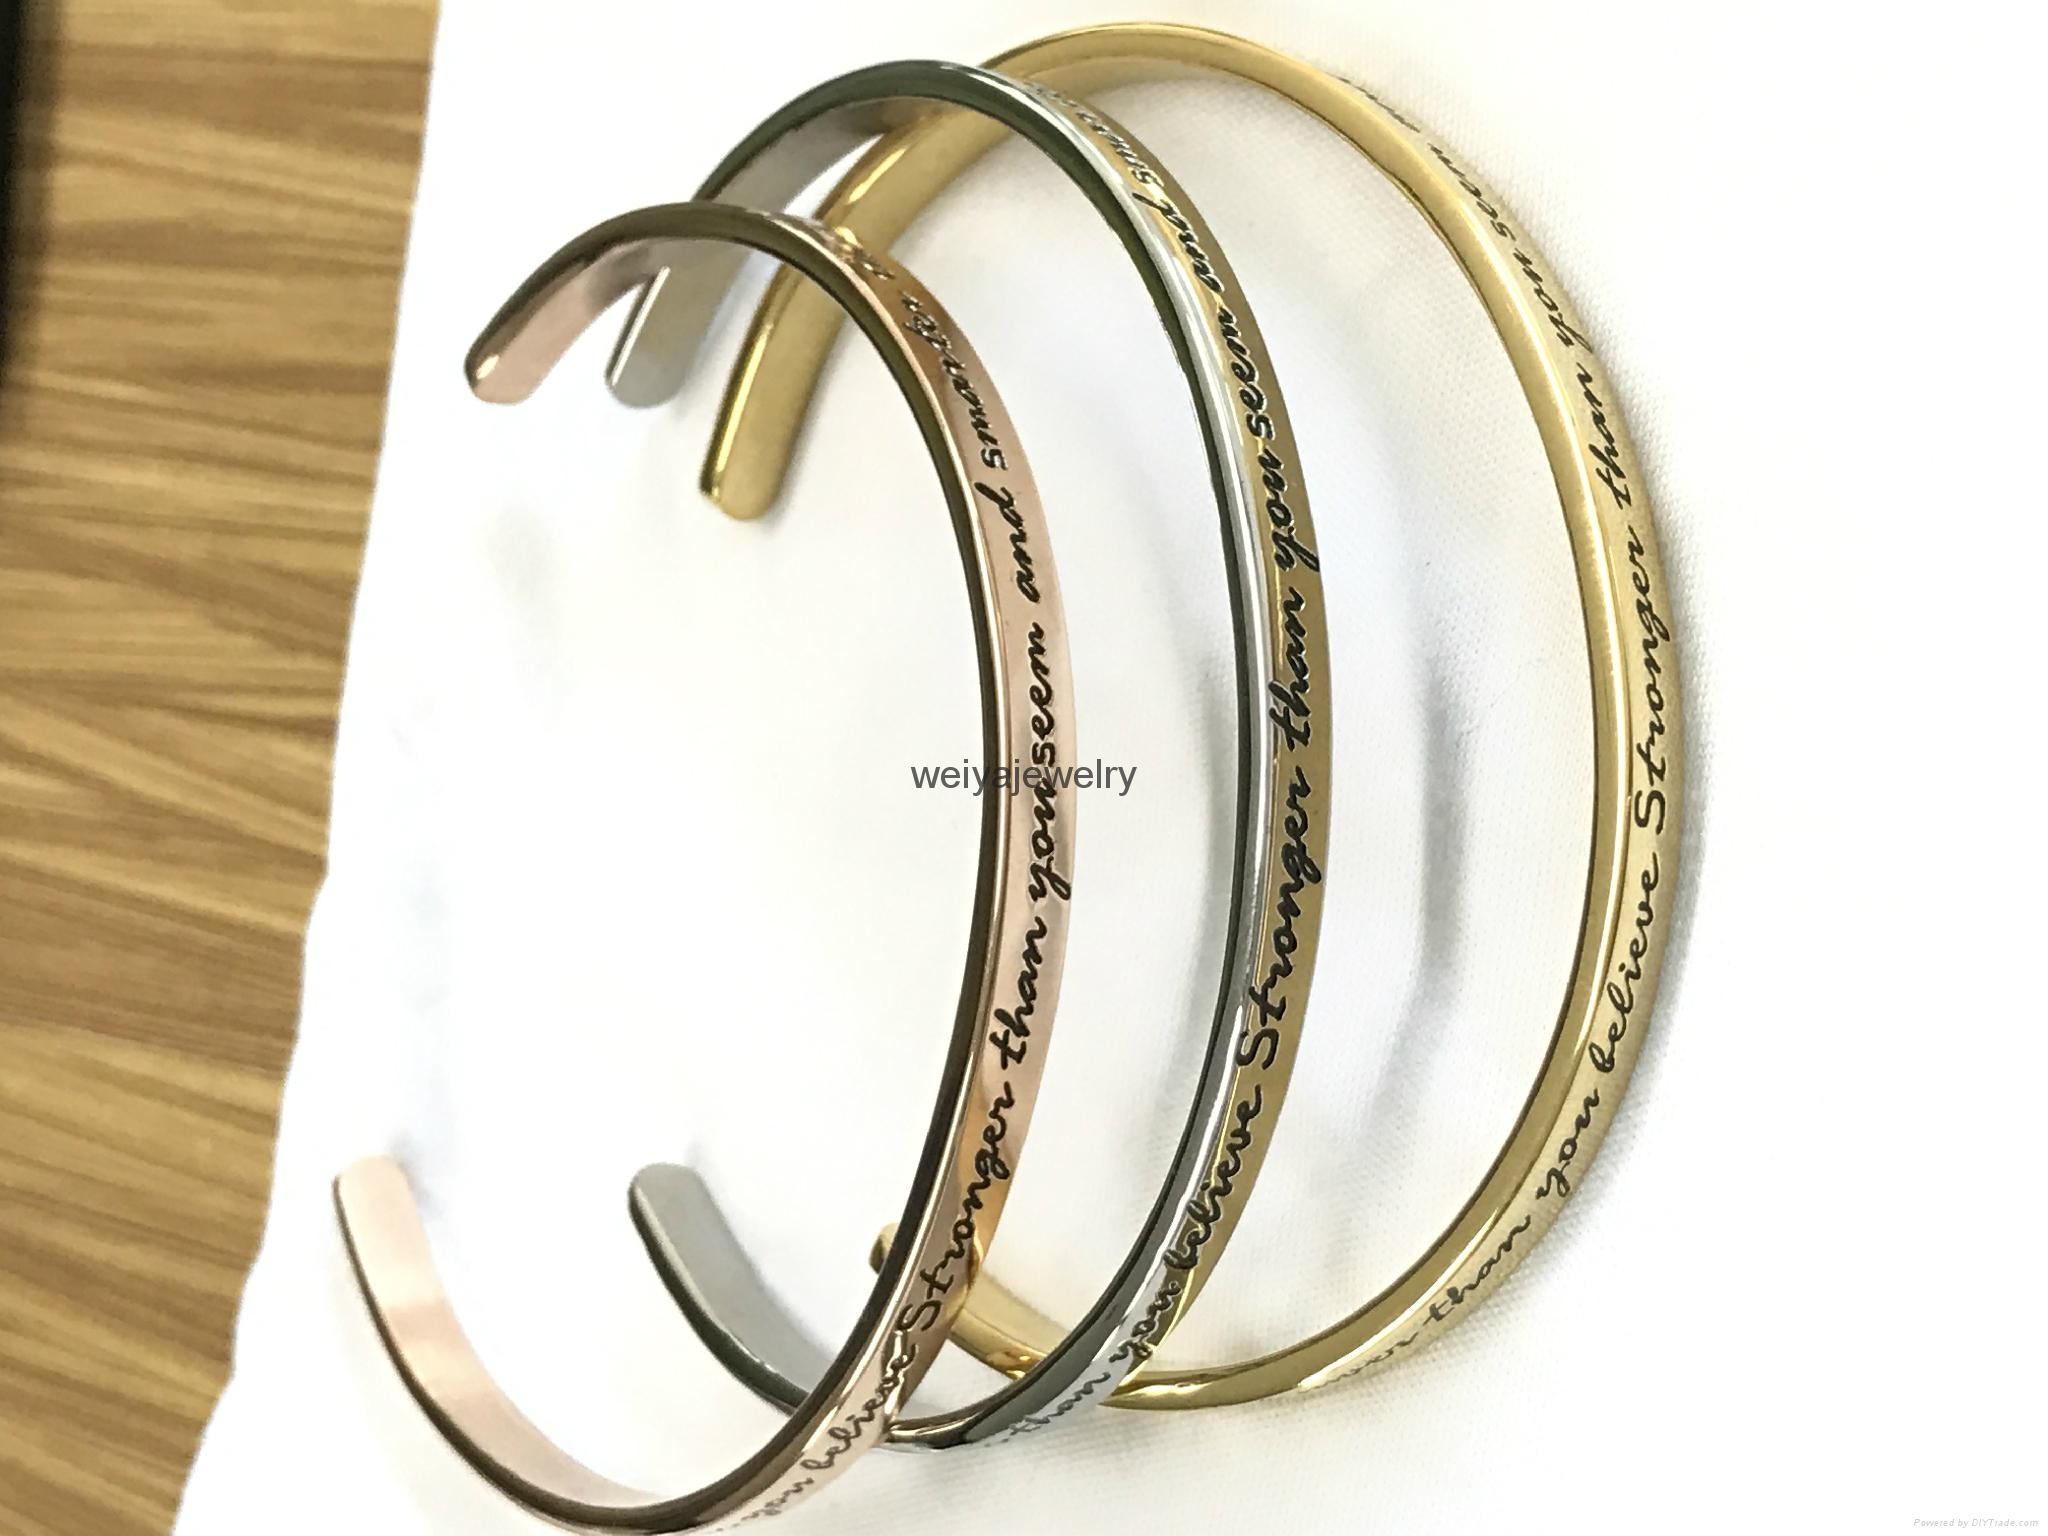 Fashion stainless steel high polished inspiration engraved message cuff bracelet 2